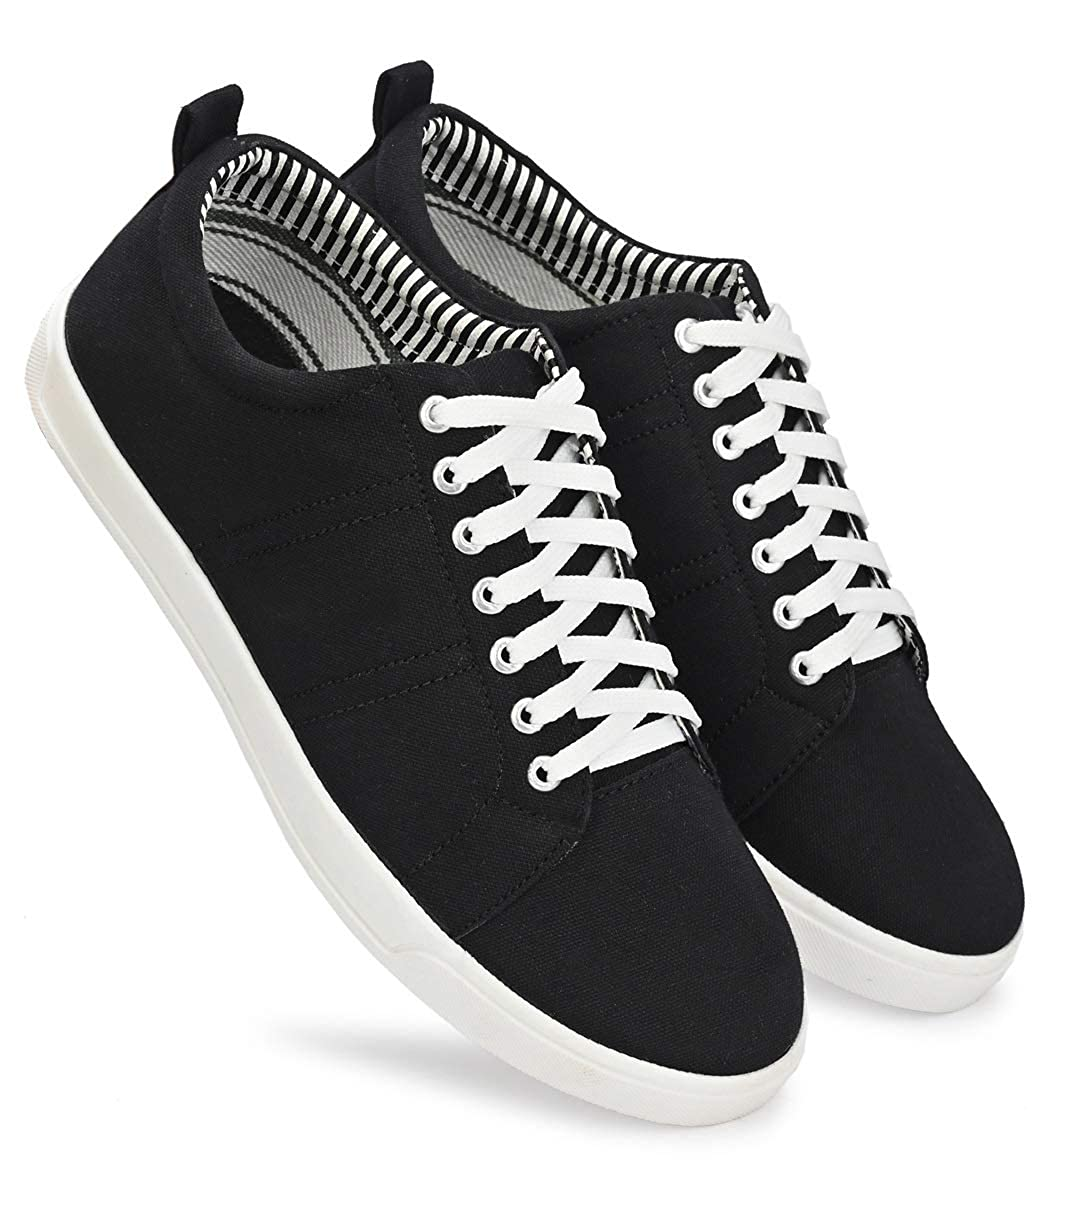 Buy Mactree Lace-up Sneakers Casual